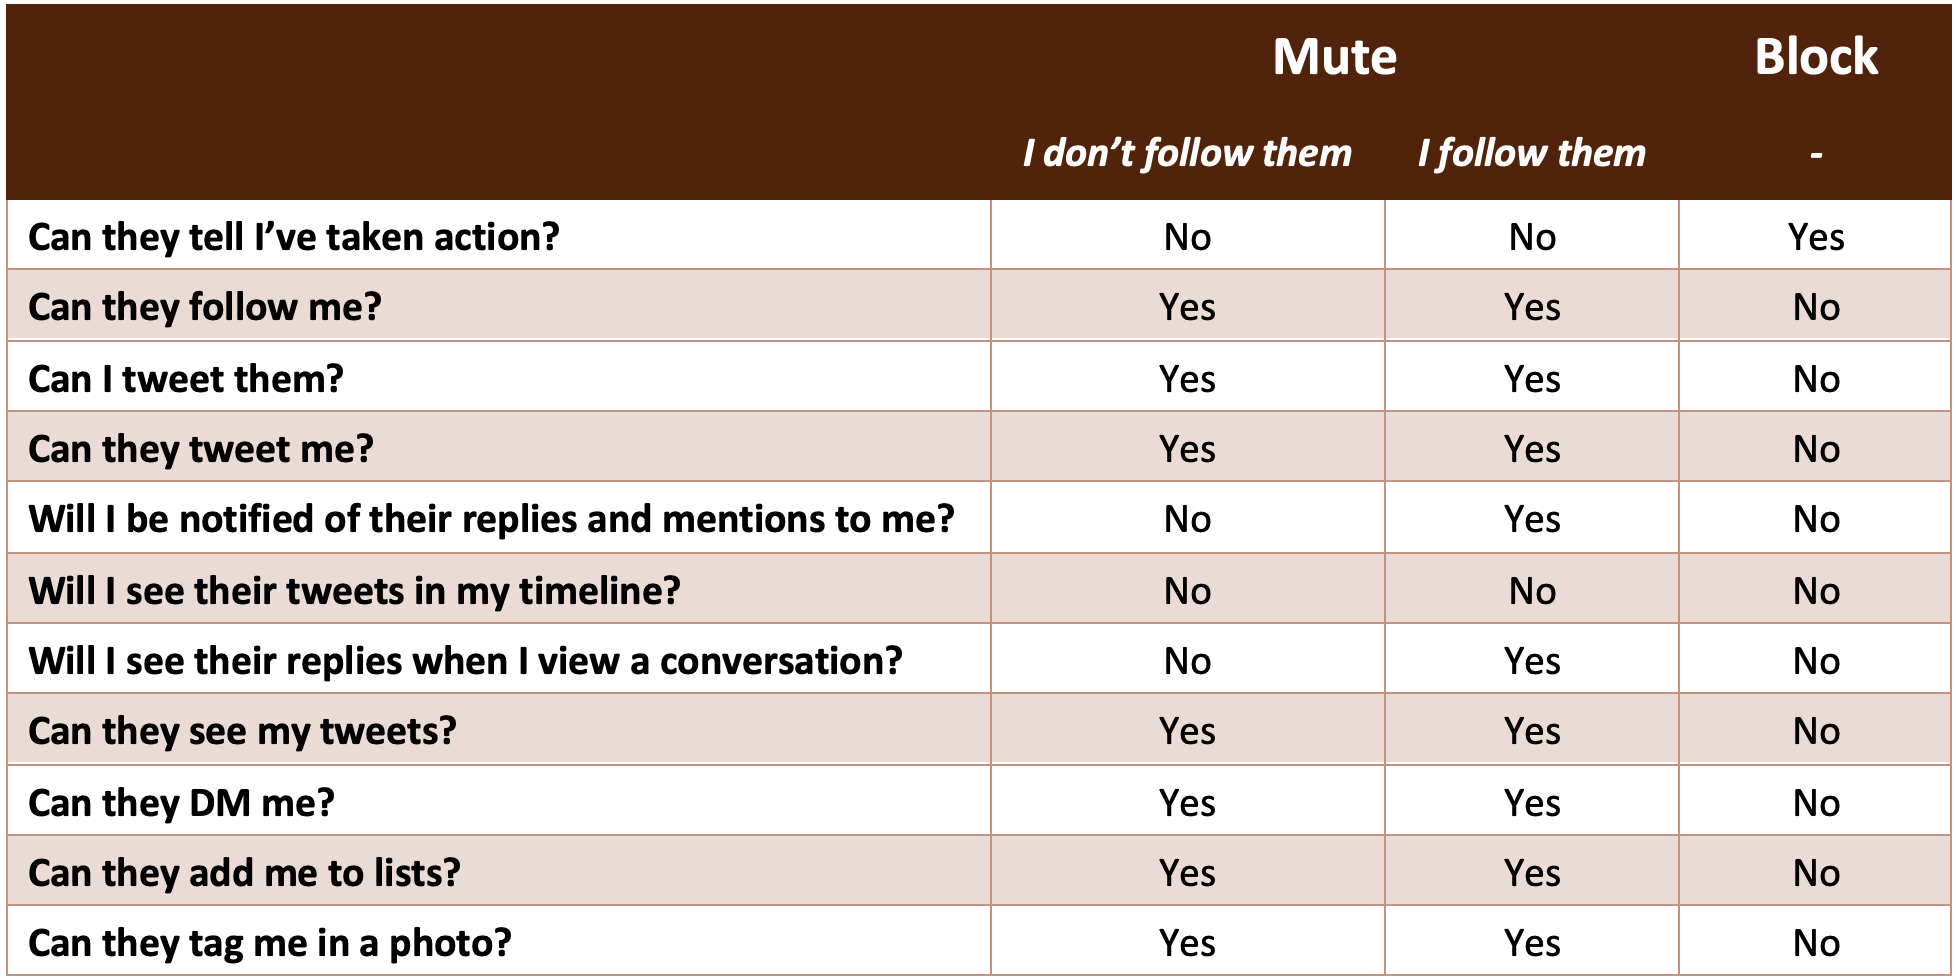 A table describing the differences between muting and blocking users on Twitter.